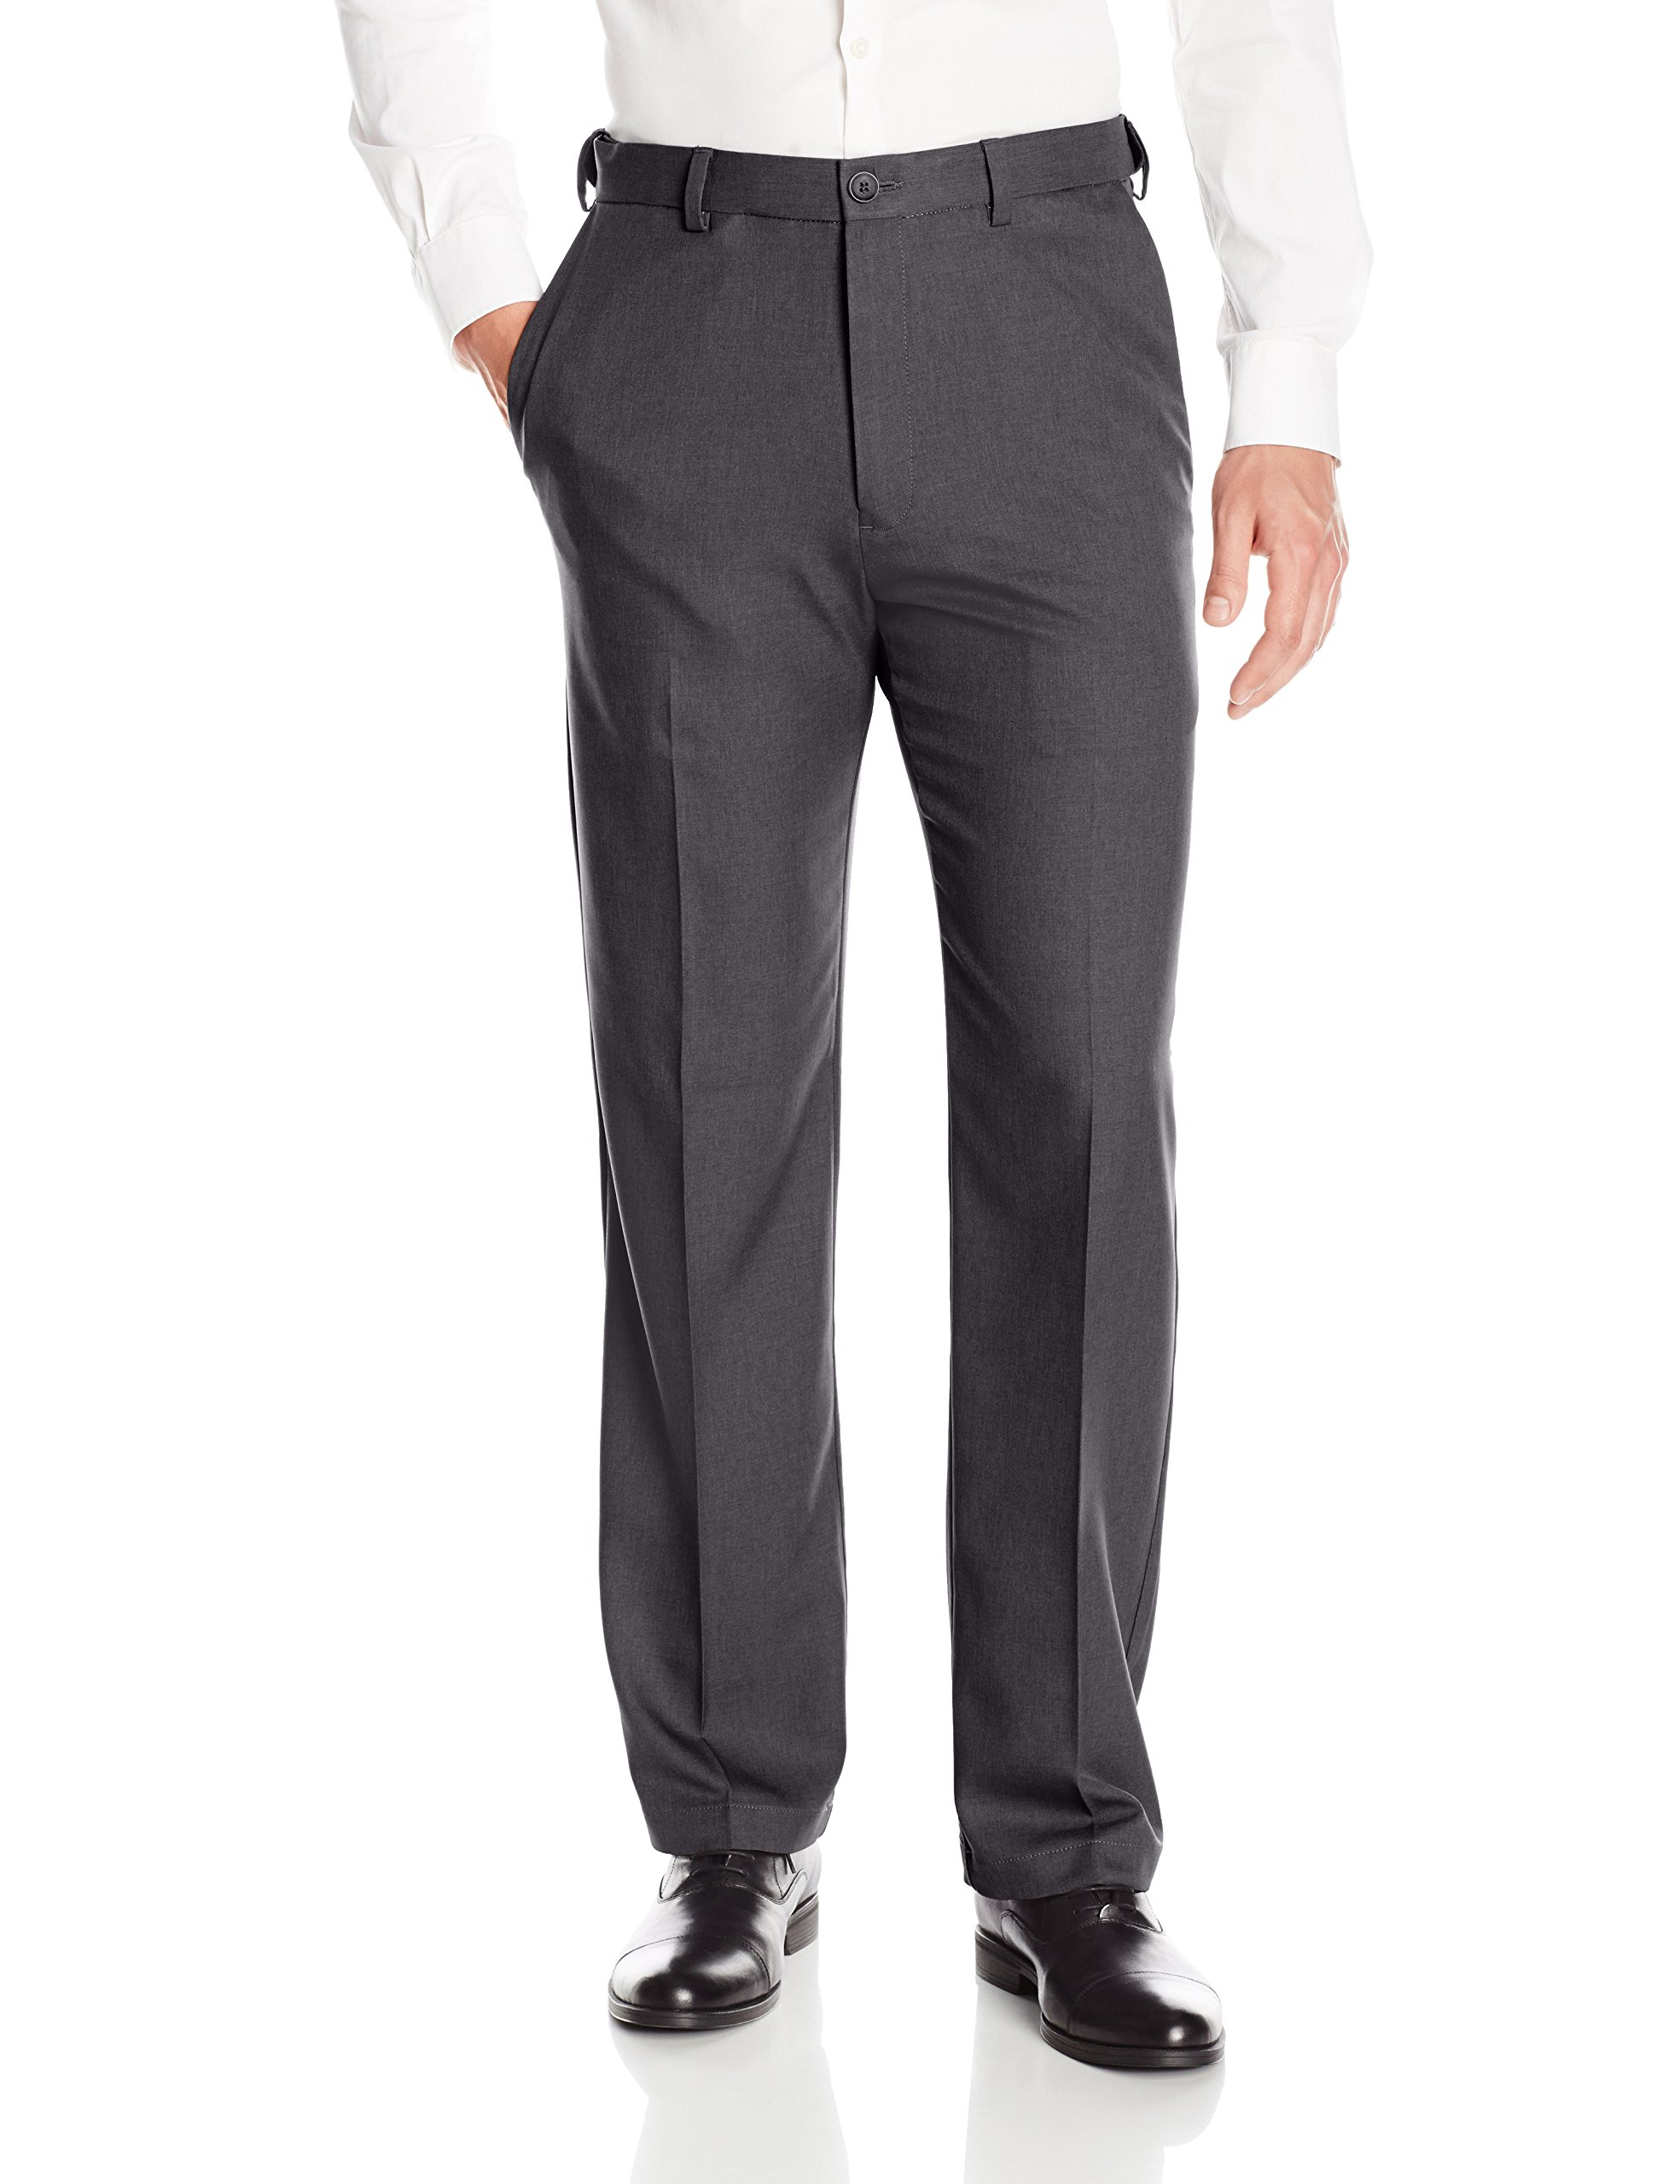 Haggar Men's Cool 18 PRO Classic Fit Flat Front Expandable Waist Pant, Charcoal Heather, 48Wx34L